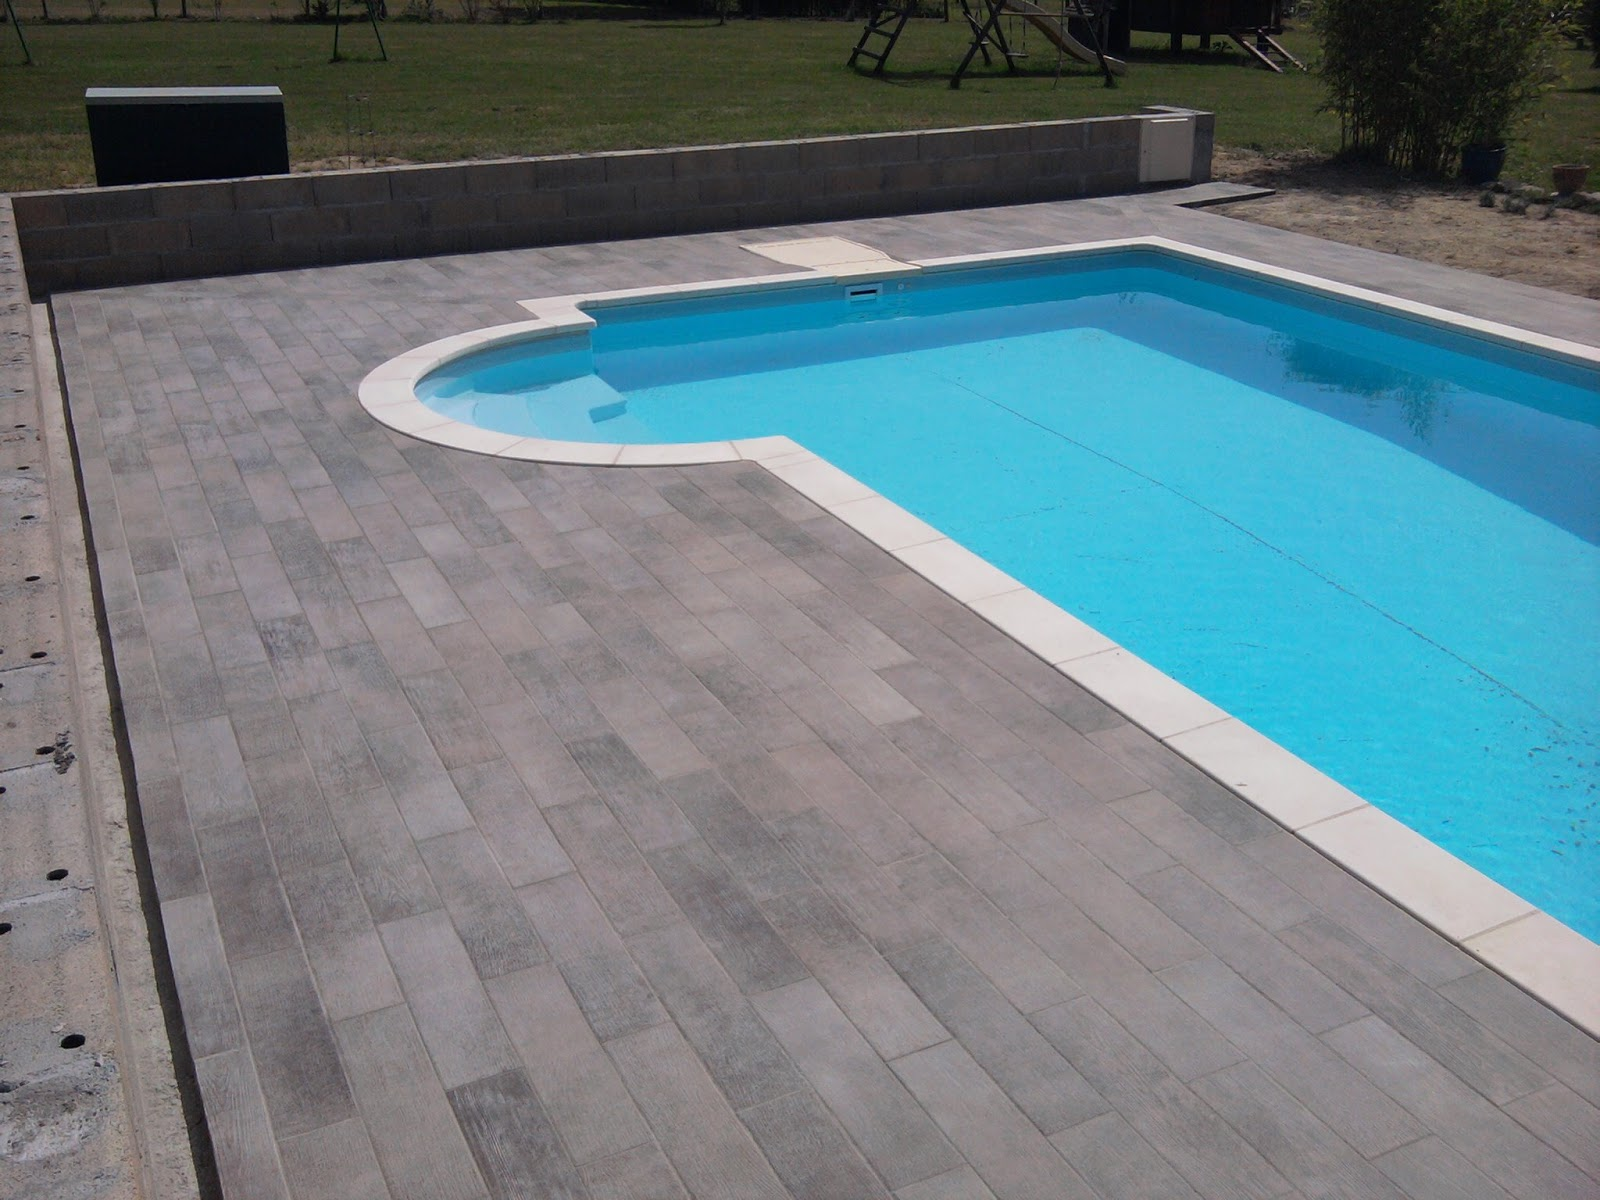 Carrelage autour de la piscine 28 images pose de for Carrelage piscine blanc